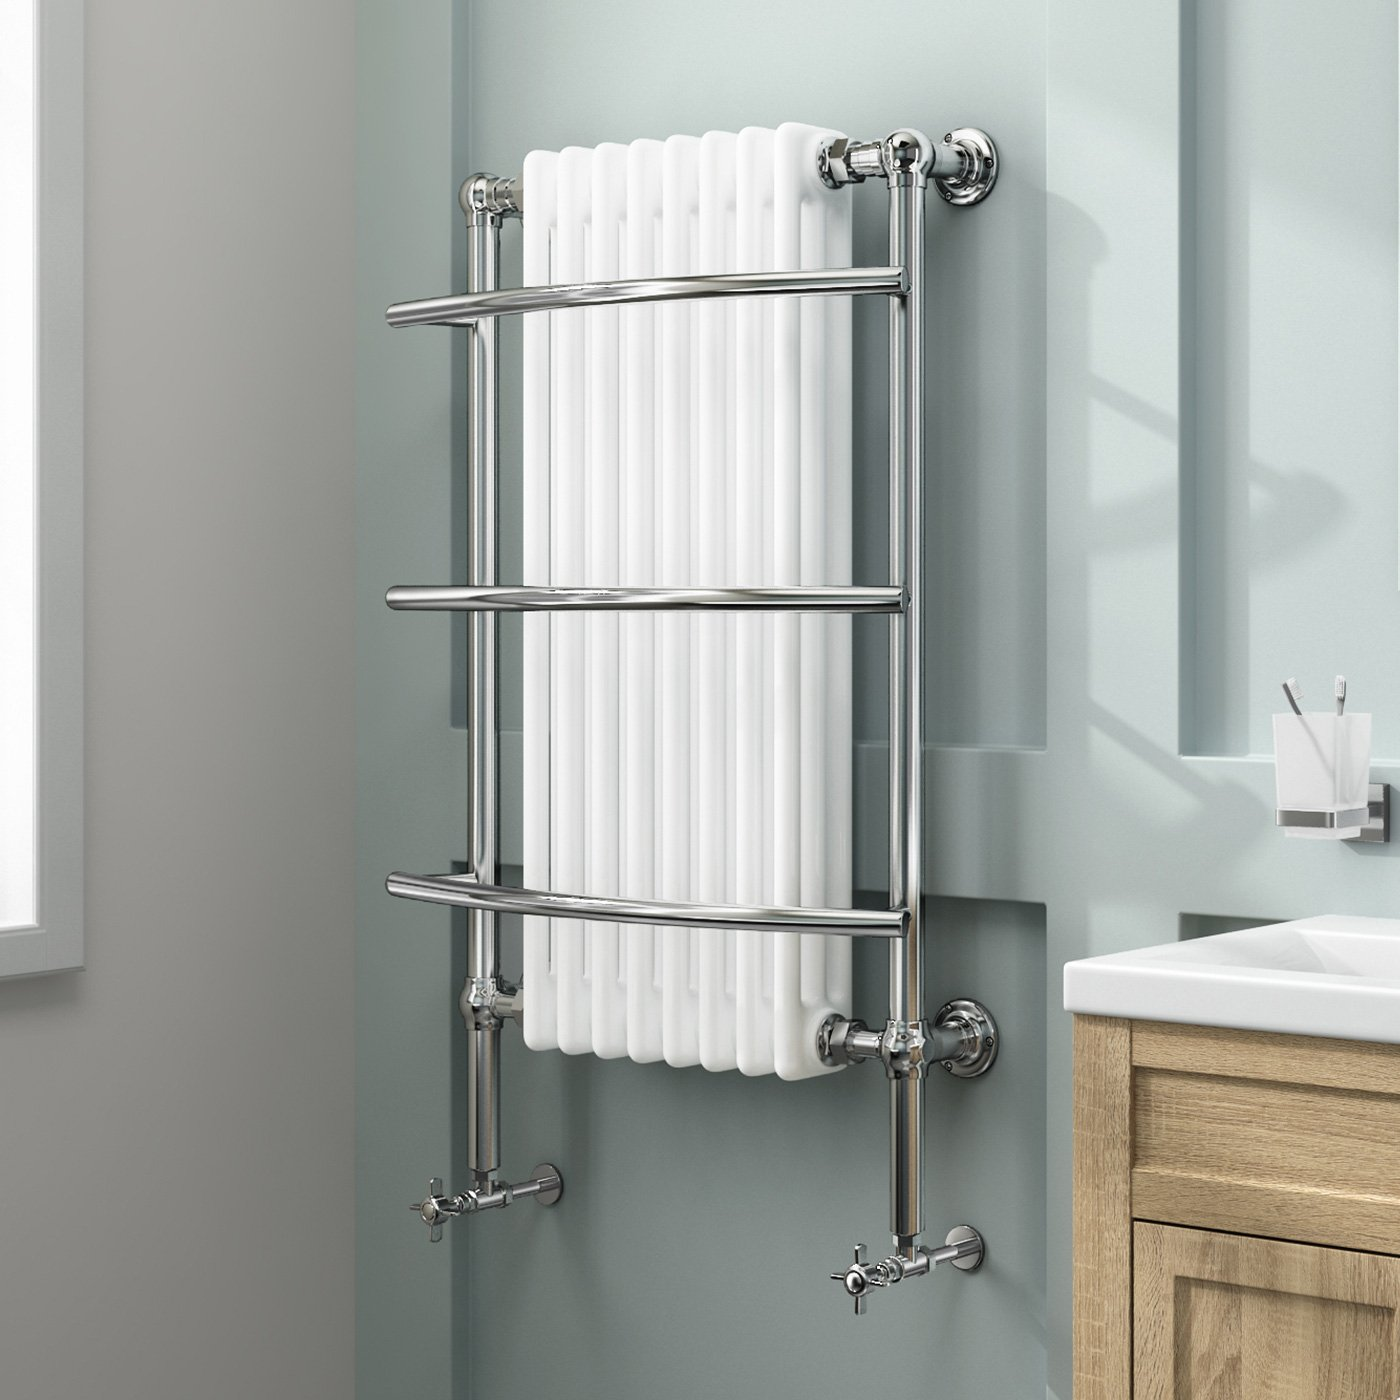 Radiator Towel Rails Bathrooms. Ibathuk 8 Column Traditional Designer Heated Towel Rail Bathroom Radiator All Sizes Rt09 Ibathuk Amazon Co Uk Diy Tools